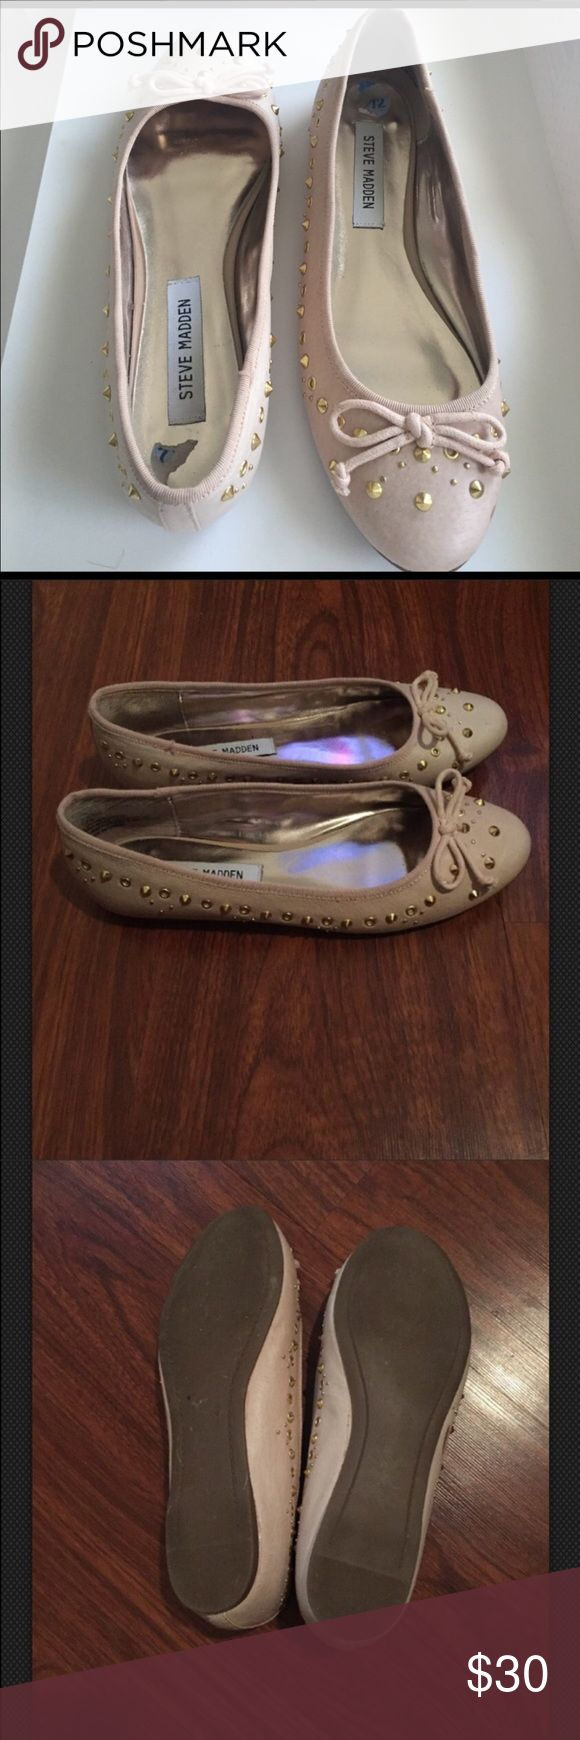 Steve Madden Blush Nude Ballet Flats SZ 7.5 NWOB Leather Ballet flats SZ 7.5 Steve Madden. Color: Nude. MINOR flaw see photos small smudge on right toe and left outer shoe. Stud and grommet accents. Bow tie in front, round toe. Beautiful. Rubber outer soles. New without box. Steve Madden Shoes Flats & Loafers